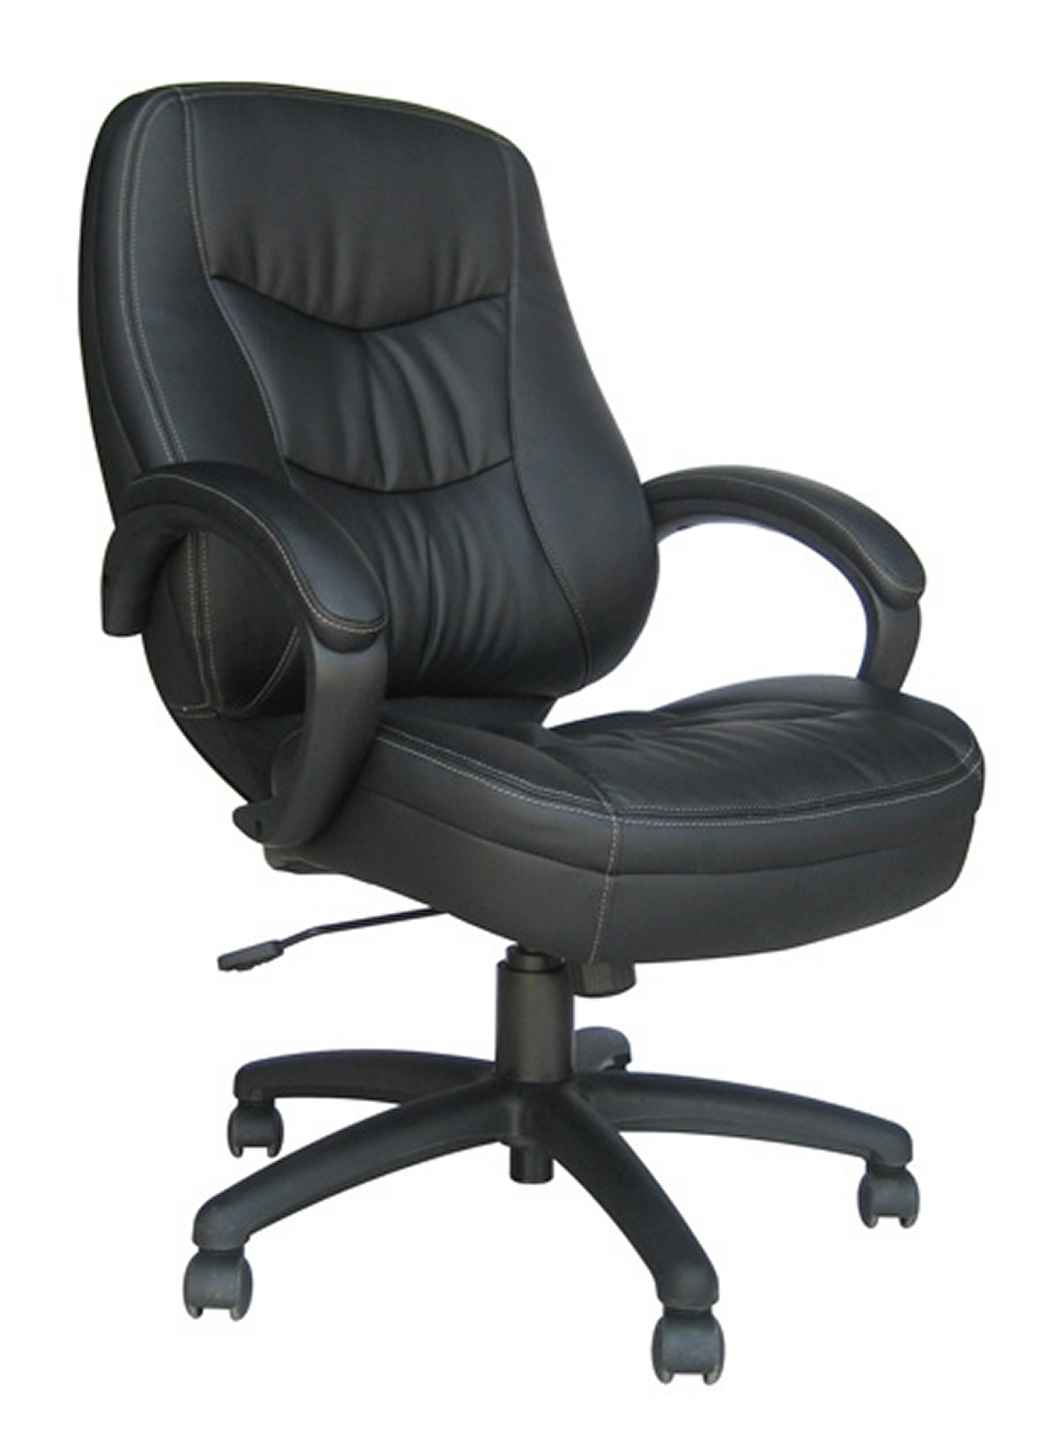 Brooklyn black leather office chair with arms